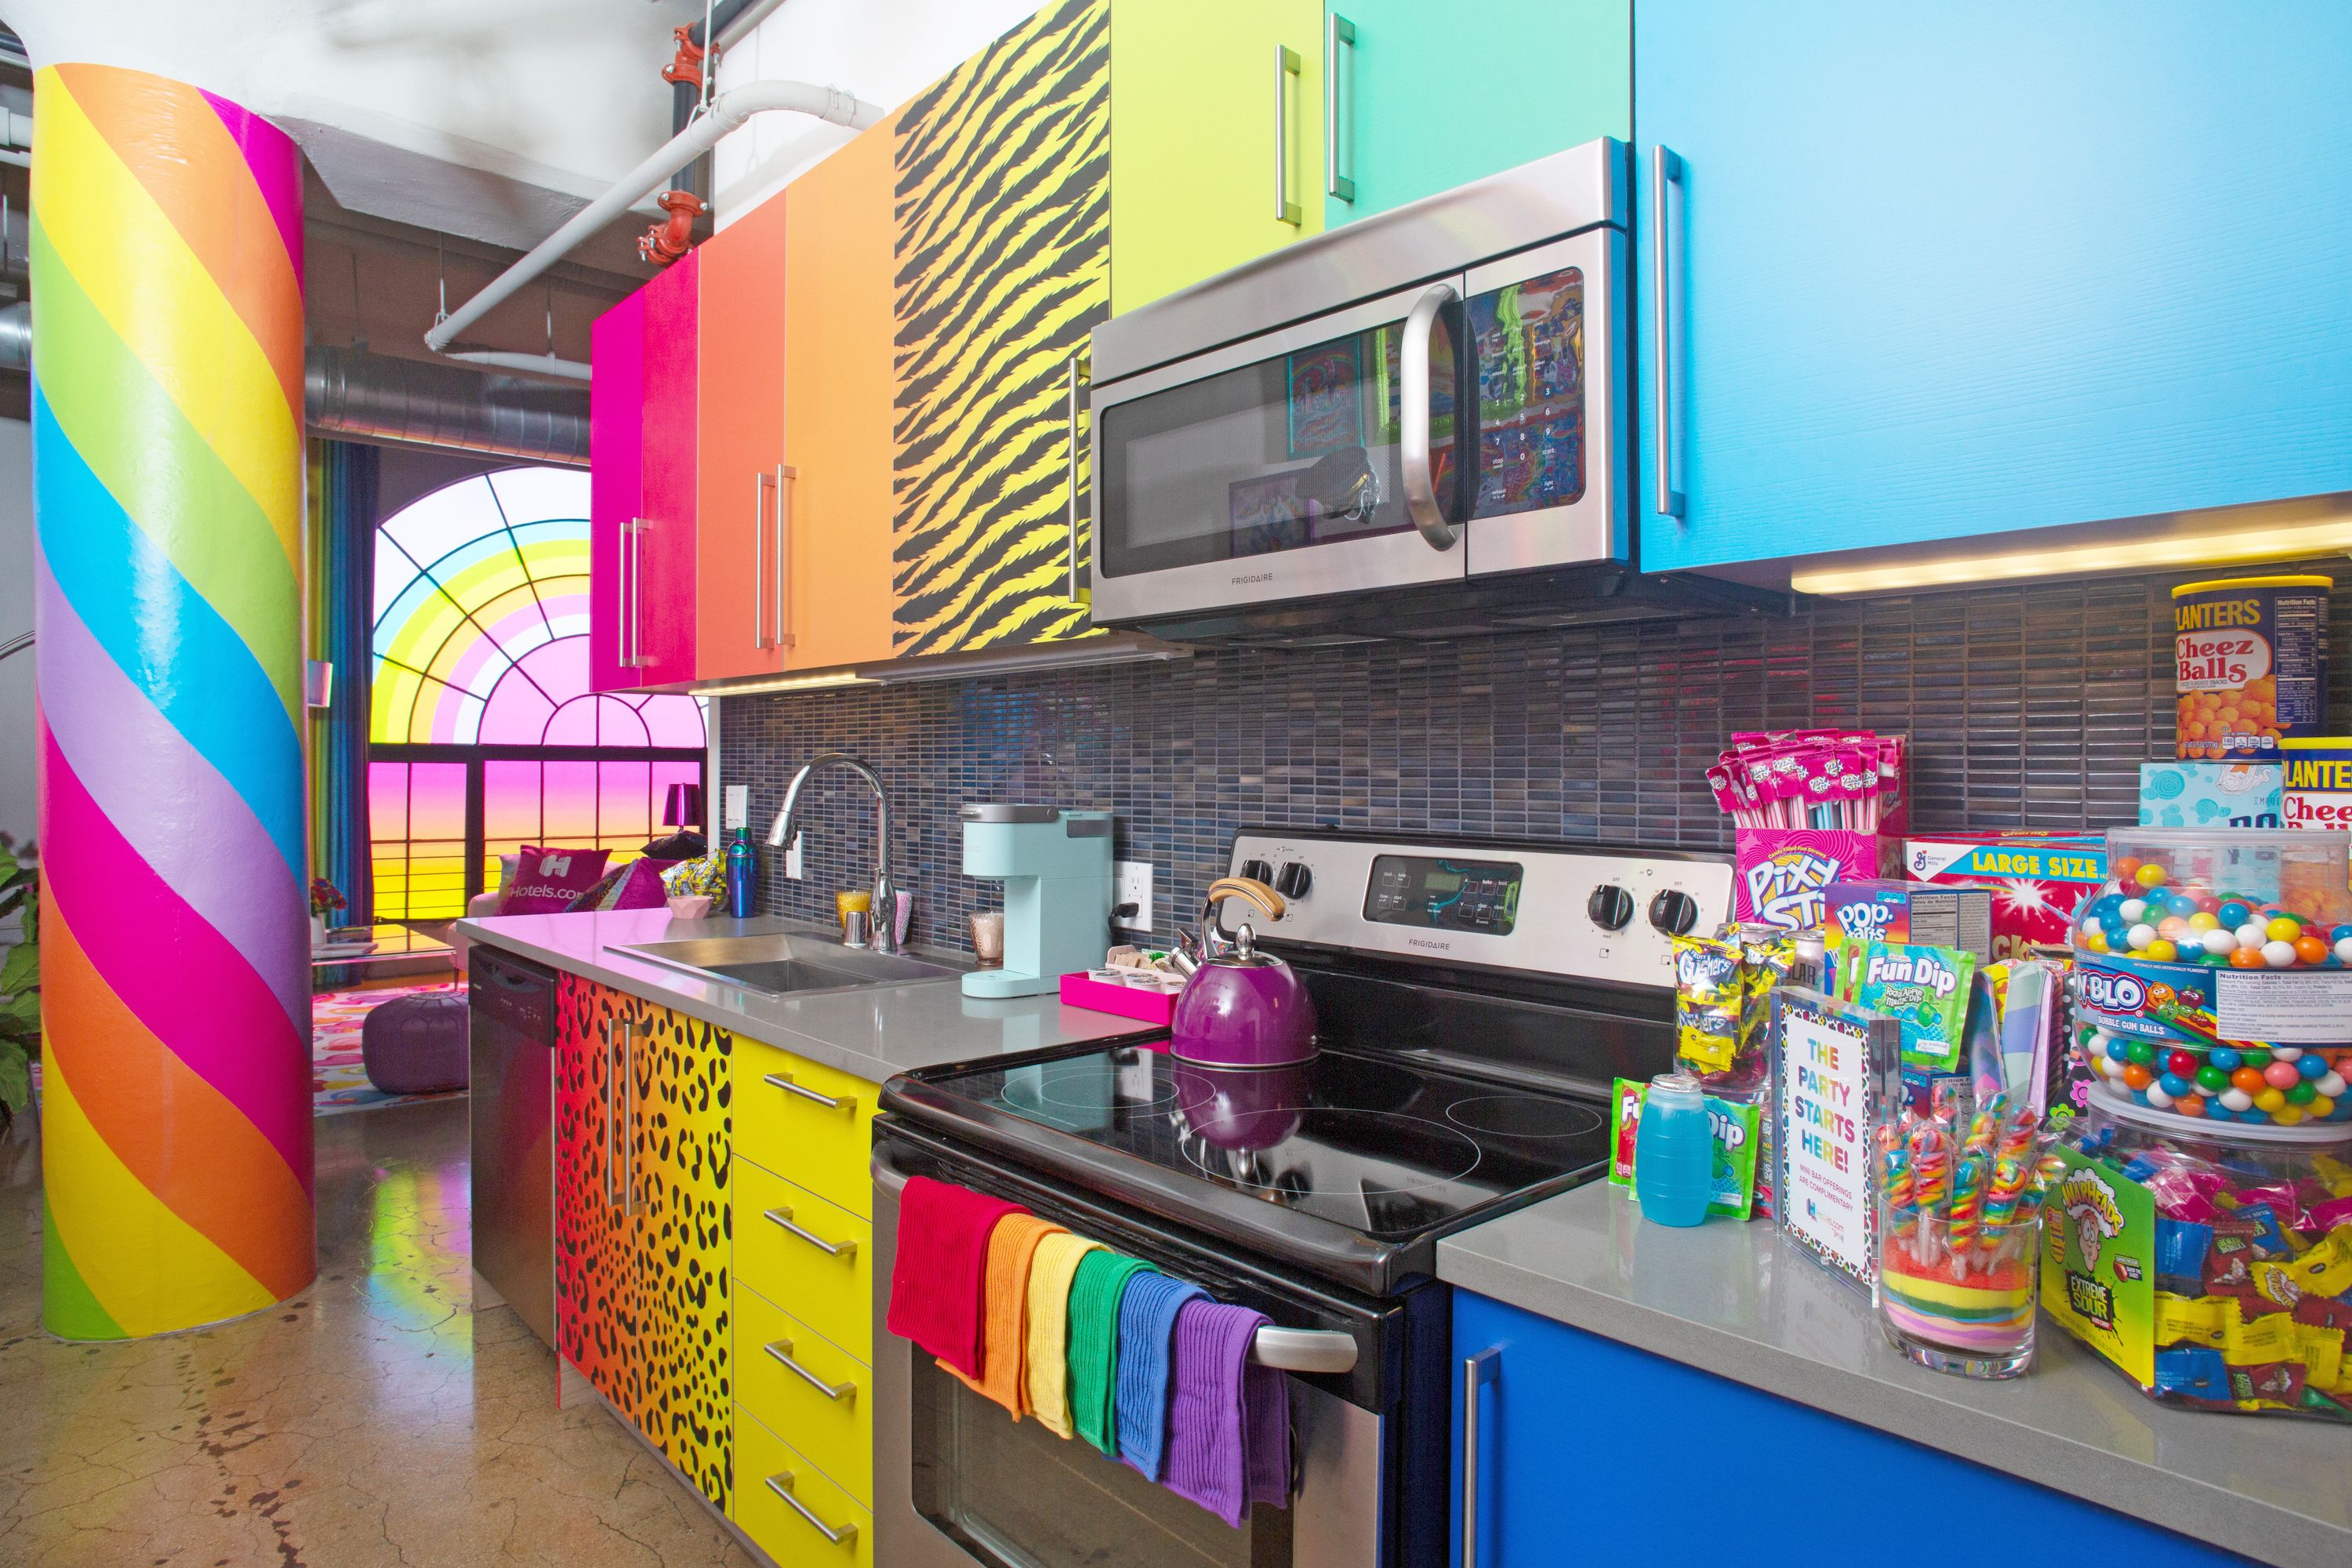 This Lisa Frank Flat Is Stocked With All Your Favorite '90s Snacks—And You Can Stay The Night